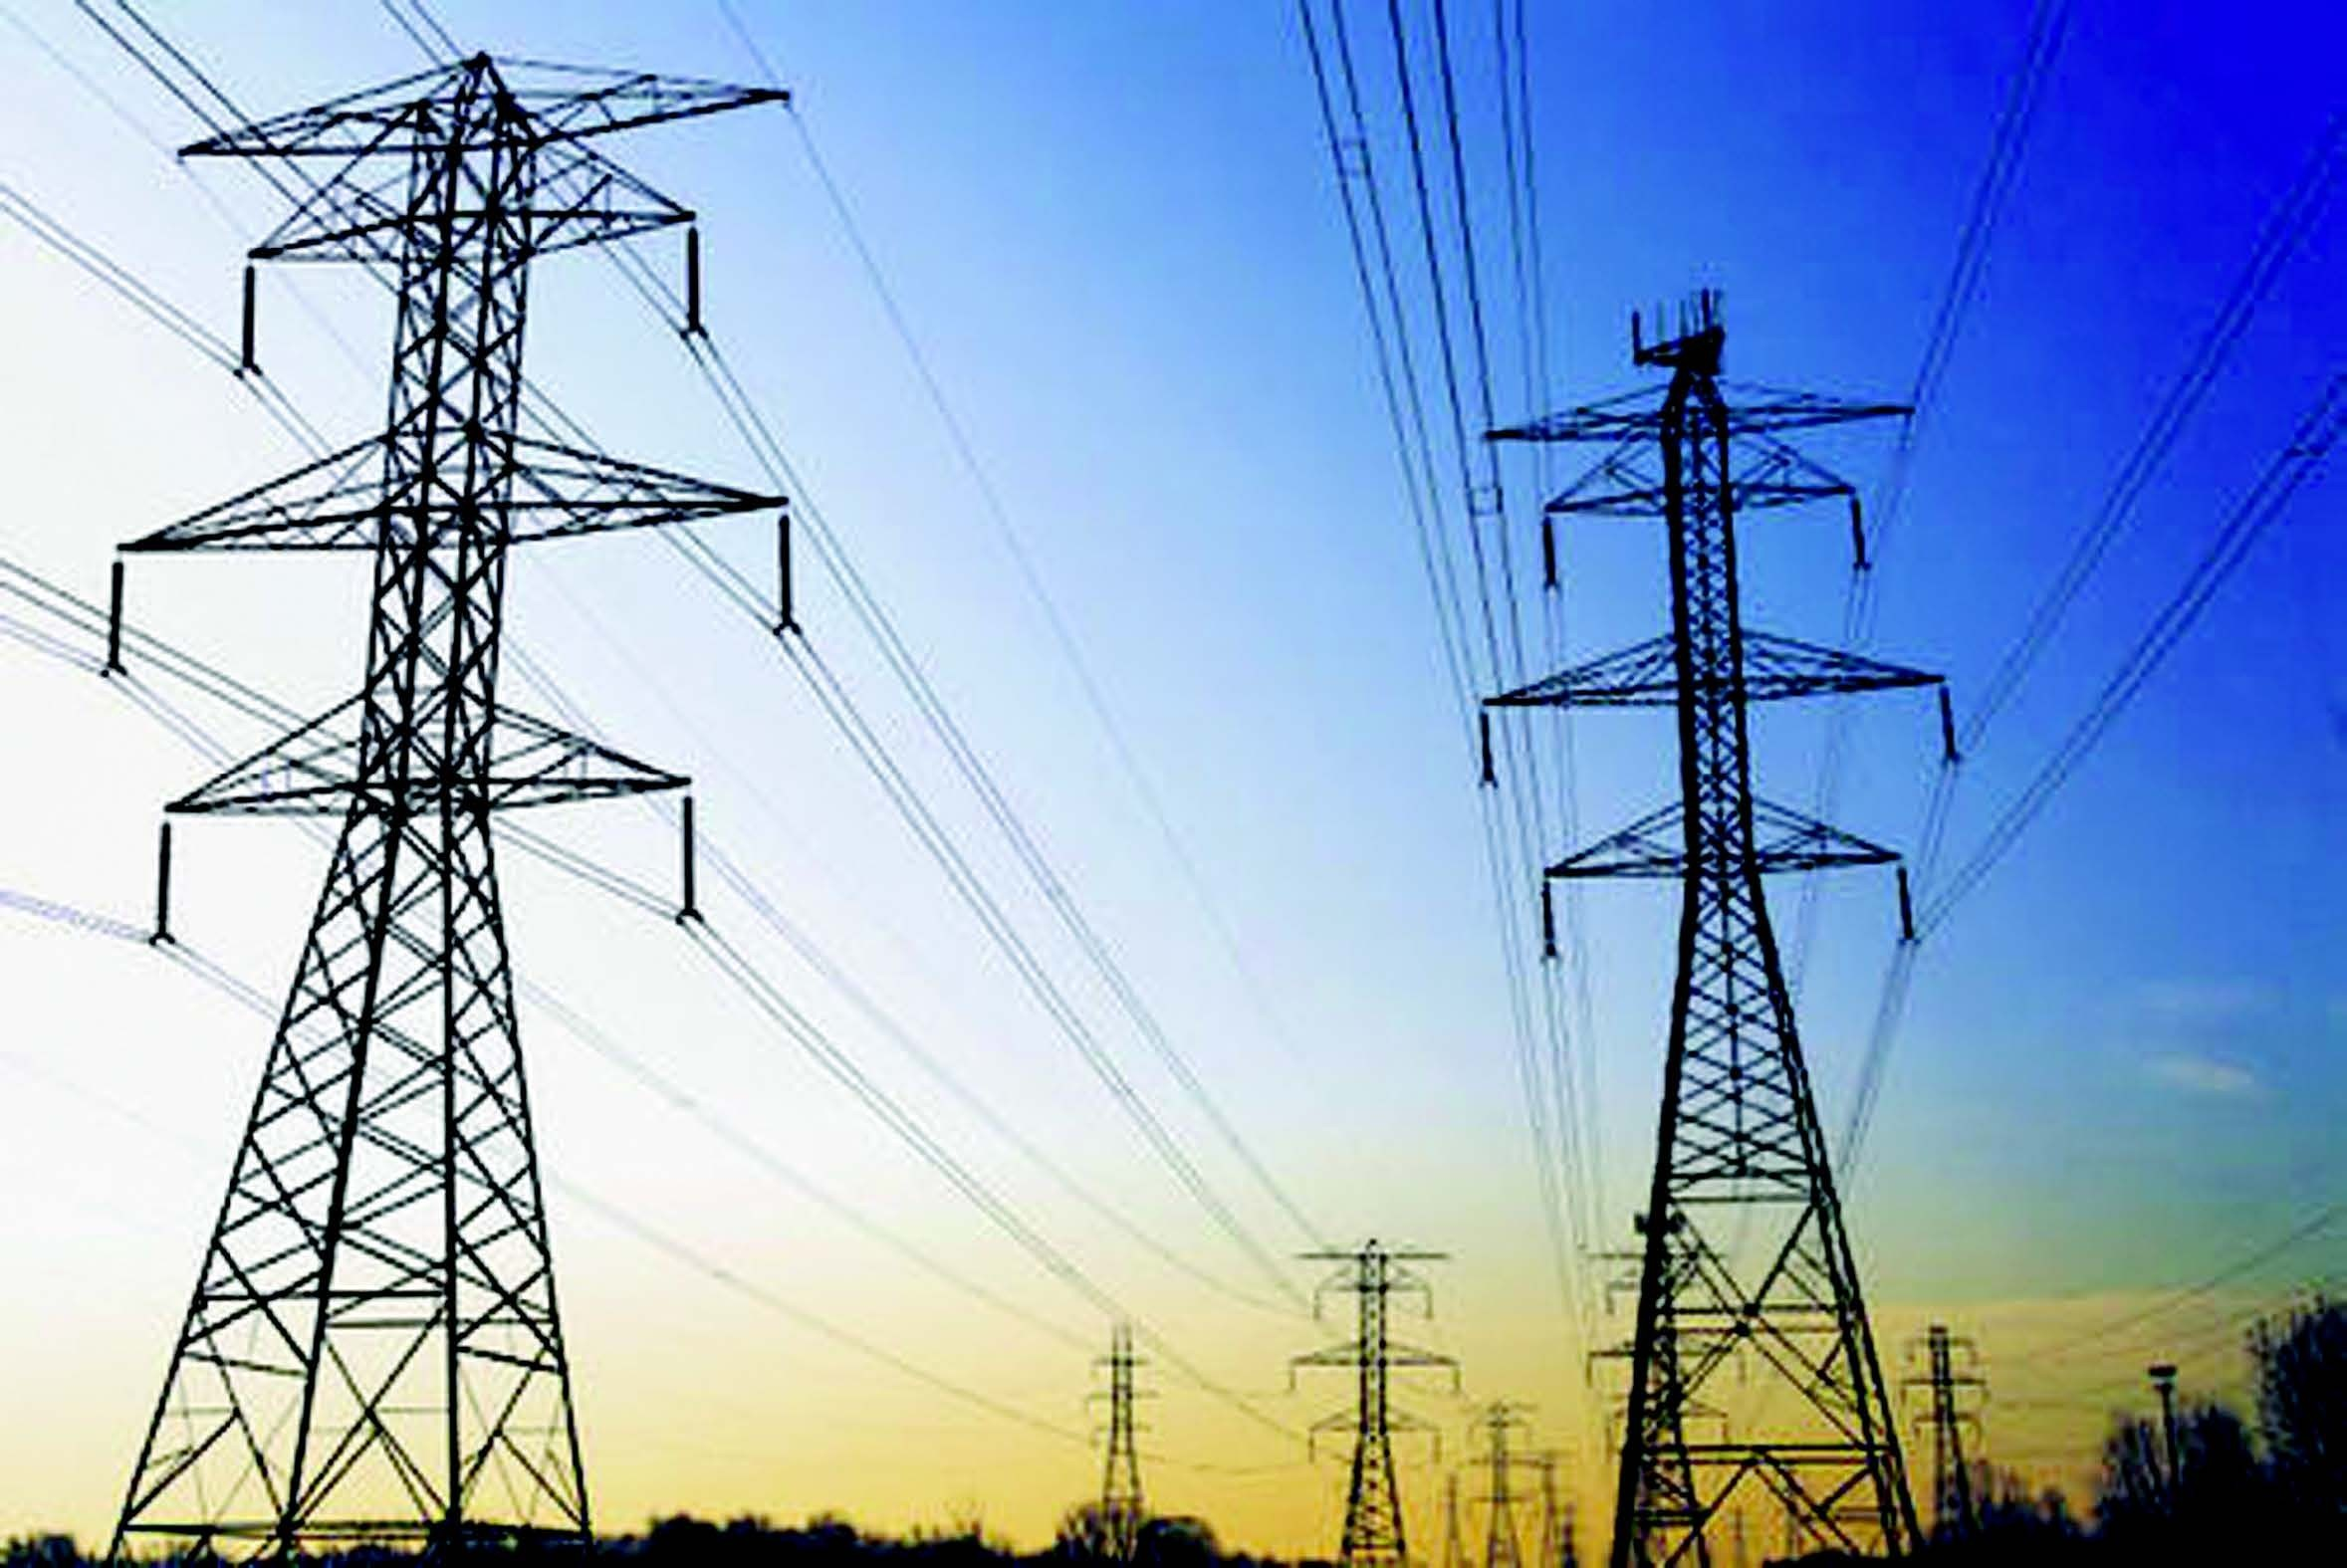 Discount In Electricity Tariff, Concession For Aviation, Construction Industry